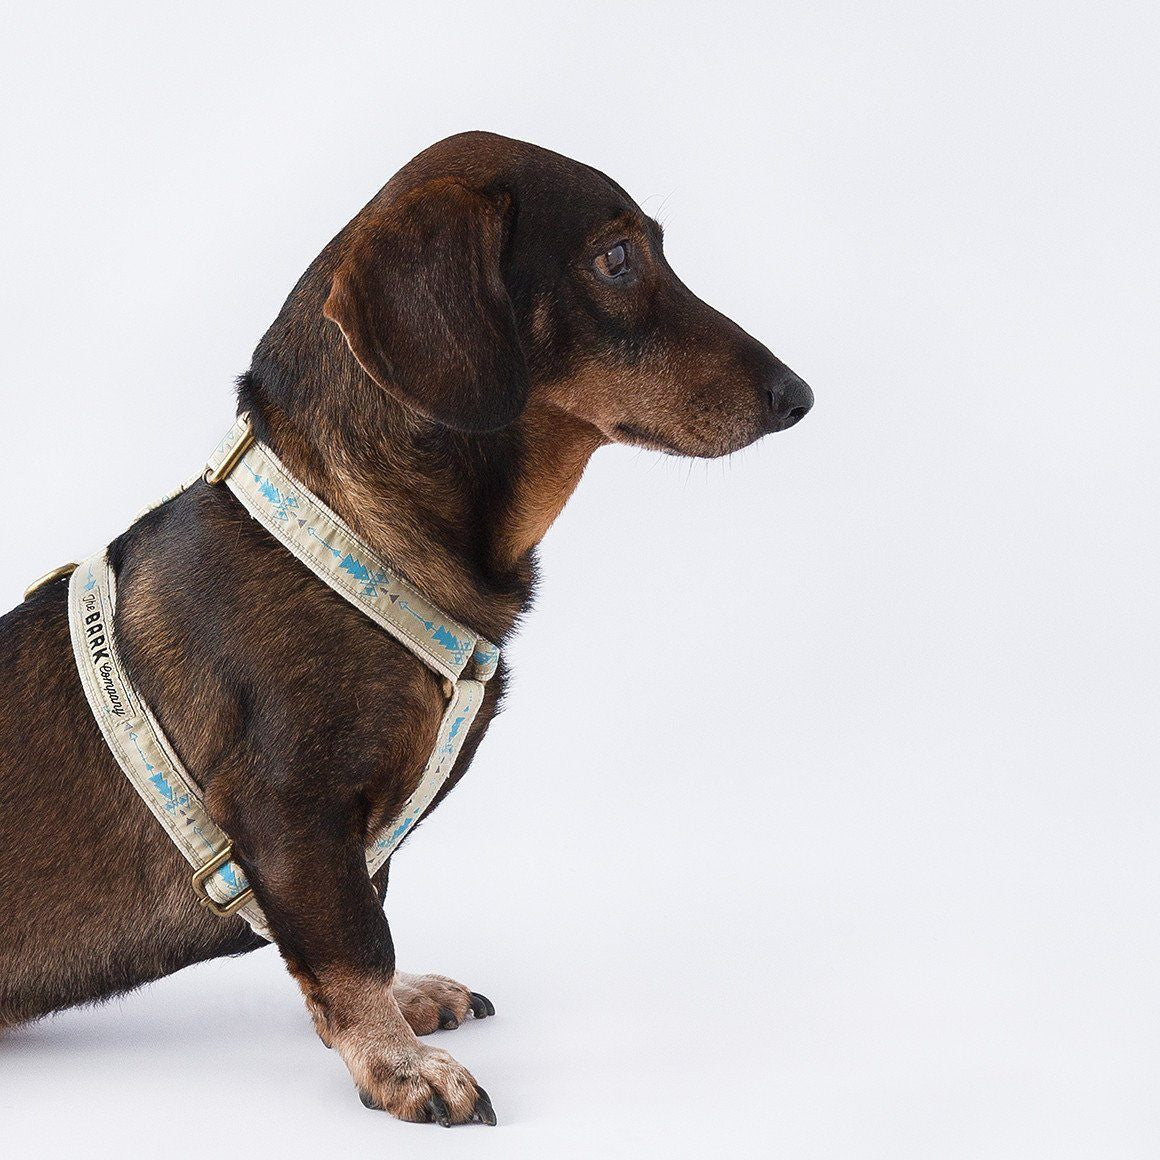 Popoca dog harness from The Bark Co - 1